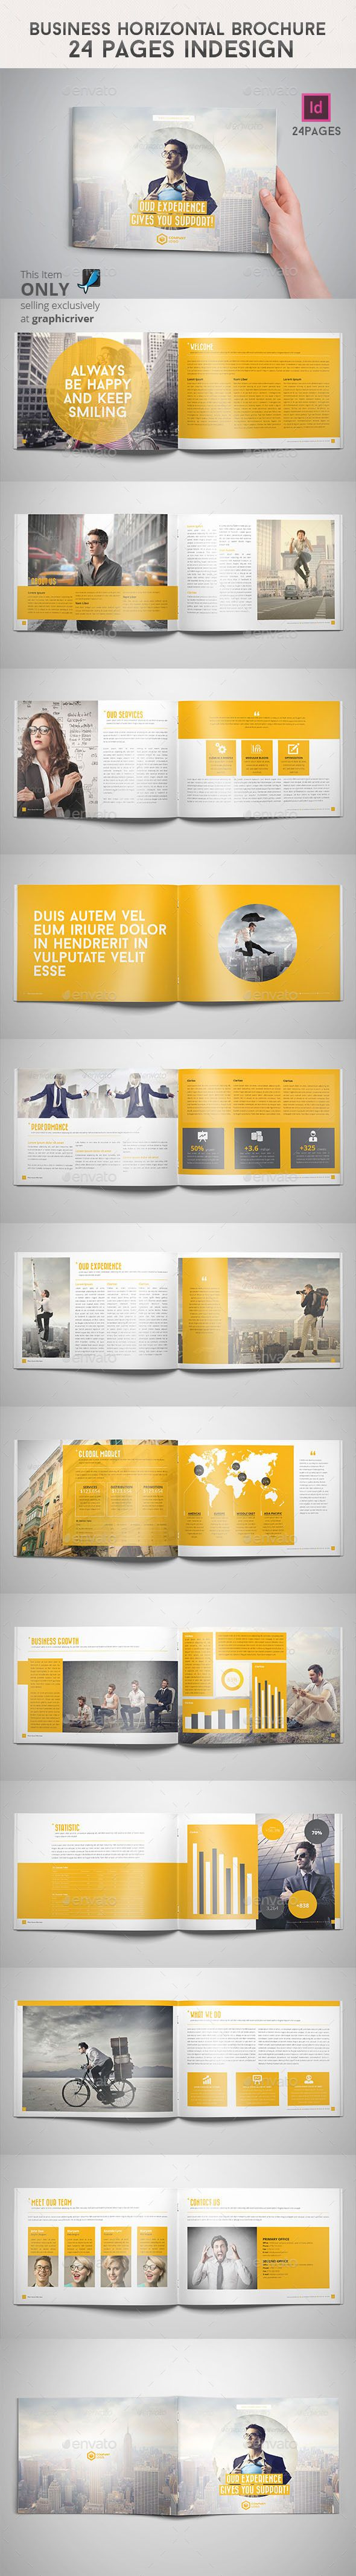 Business Horizontal Brochure Pages Indesign Brochures - Horizontal brochure template